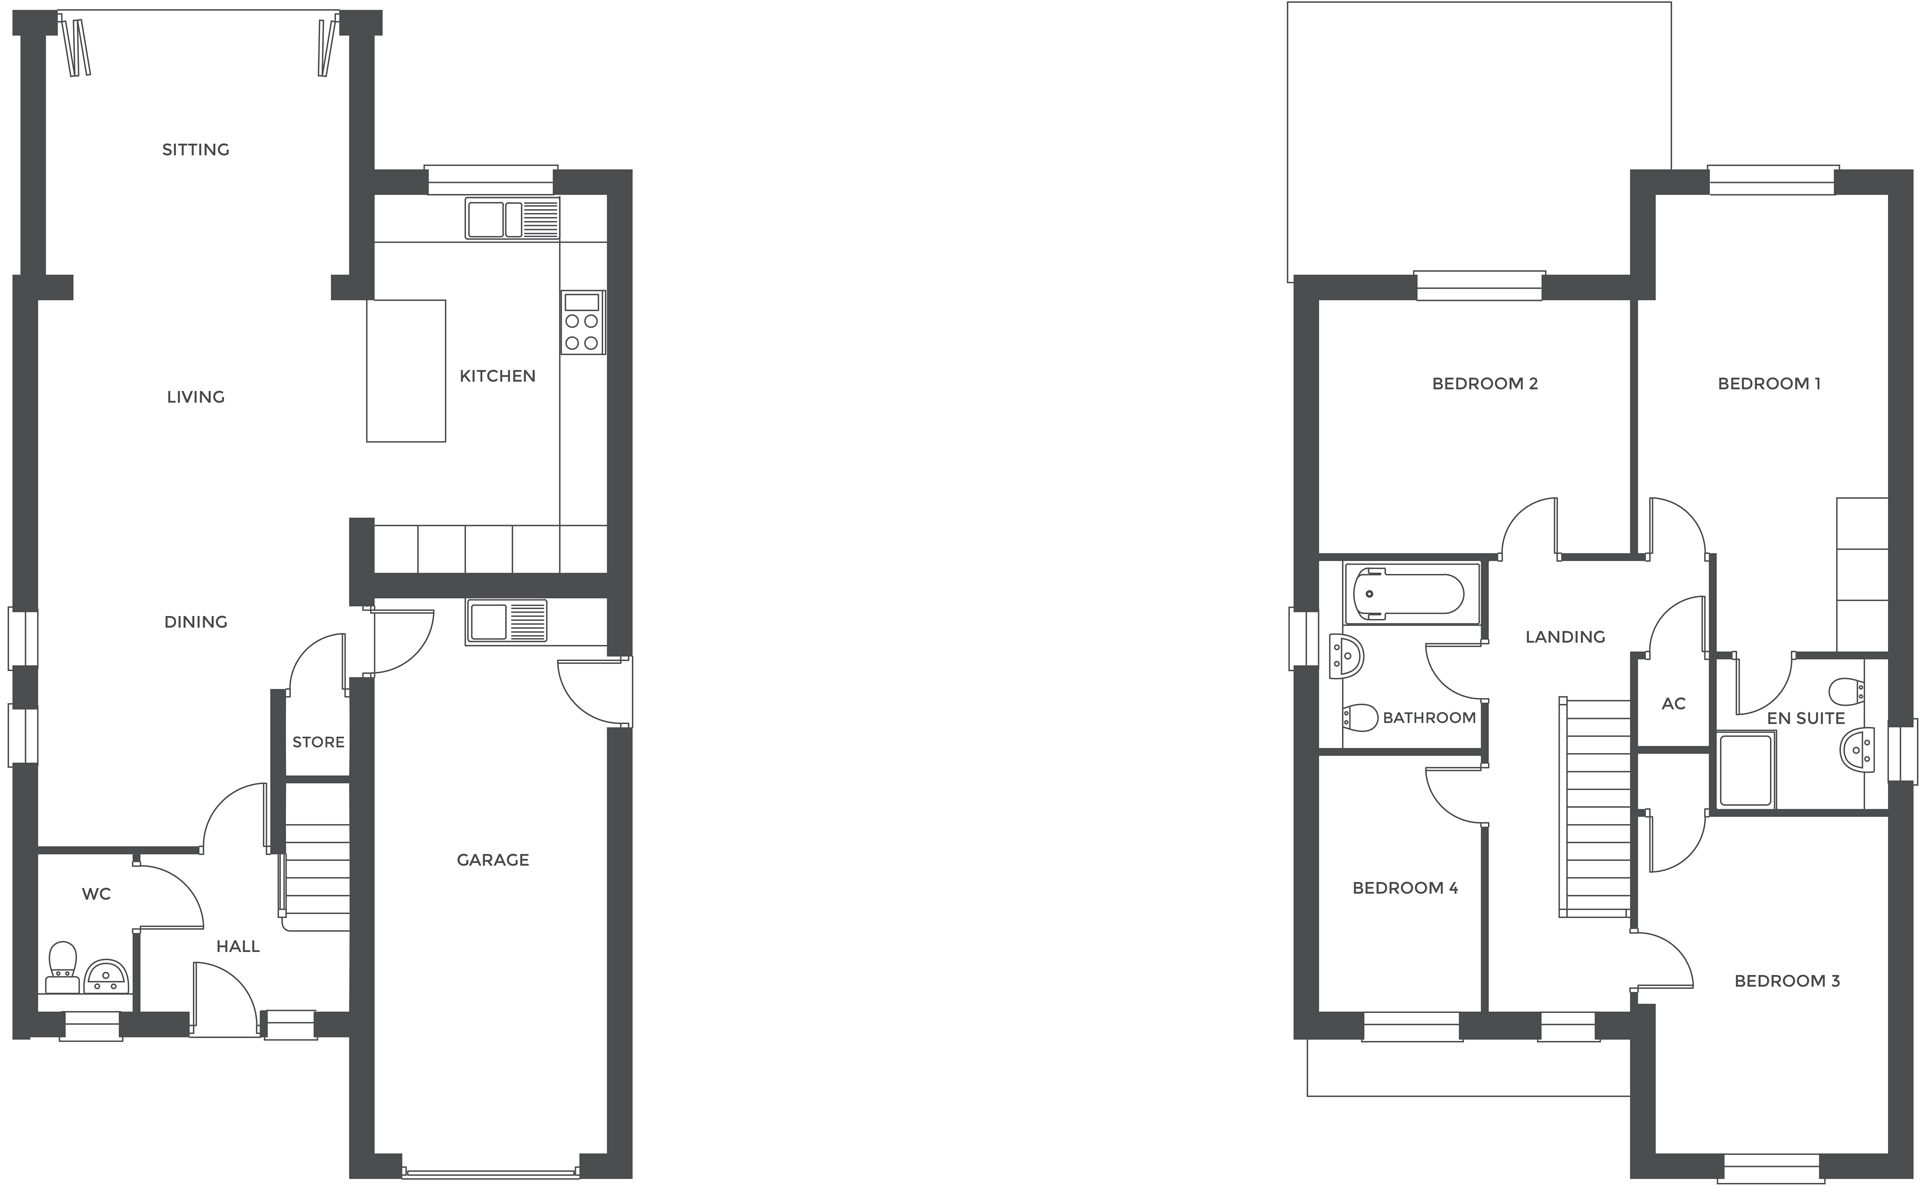 Hathorn Manor, Plot 10 floor plan